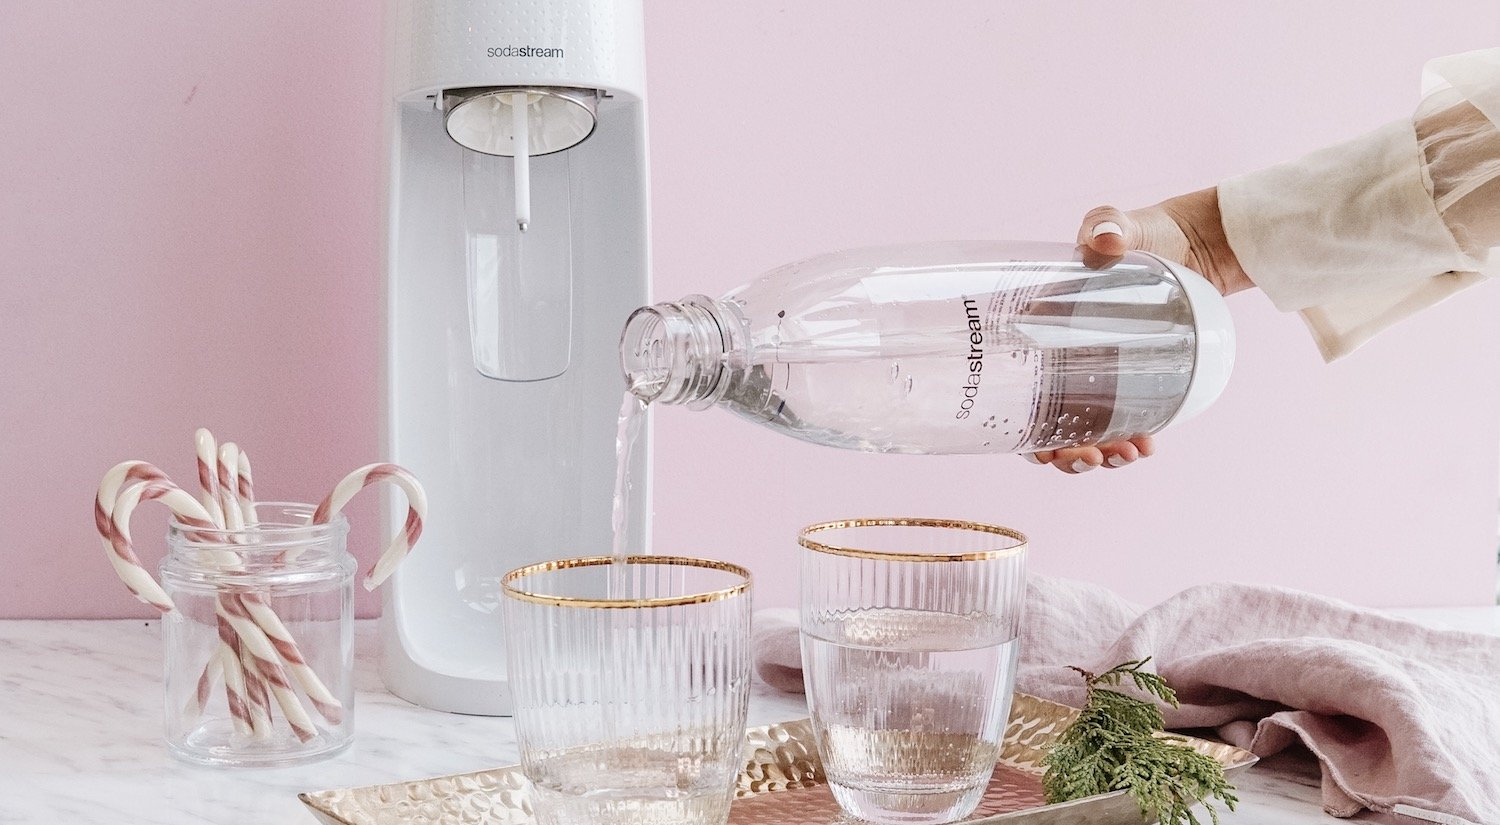 feature-sodastream-fizzi-cocktail-1500x825